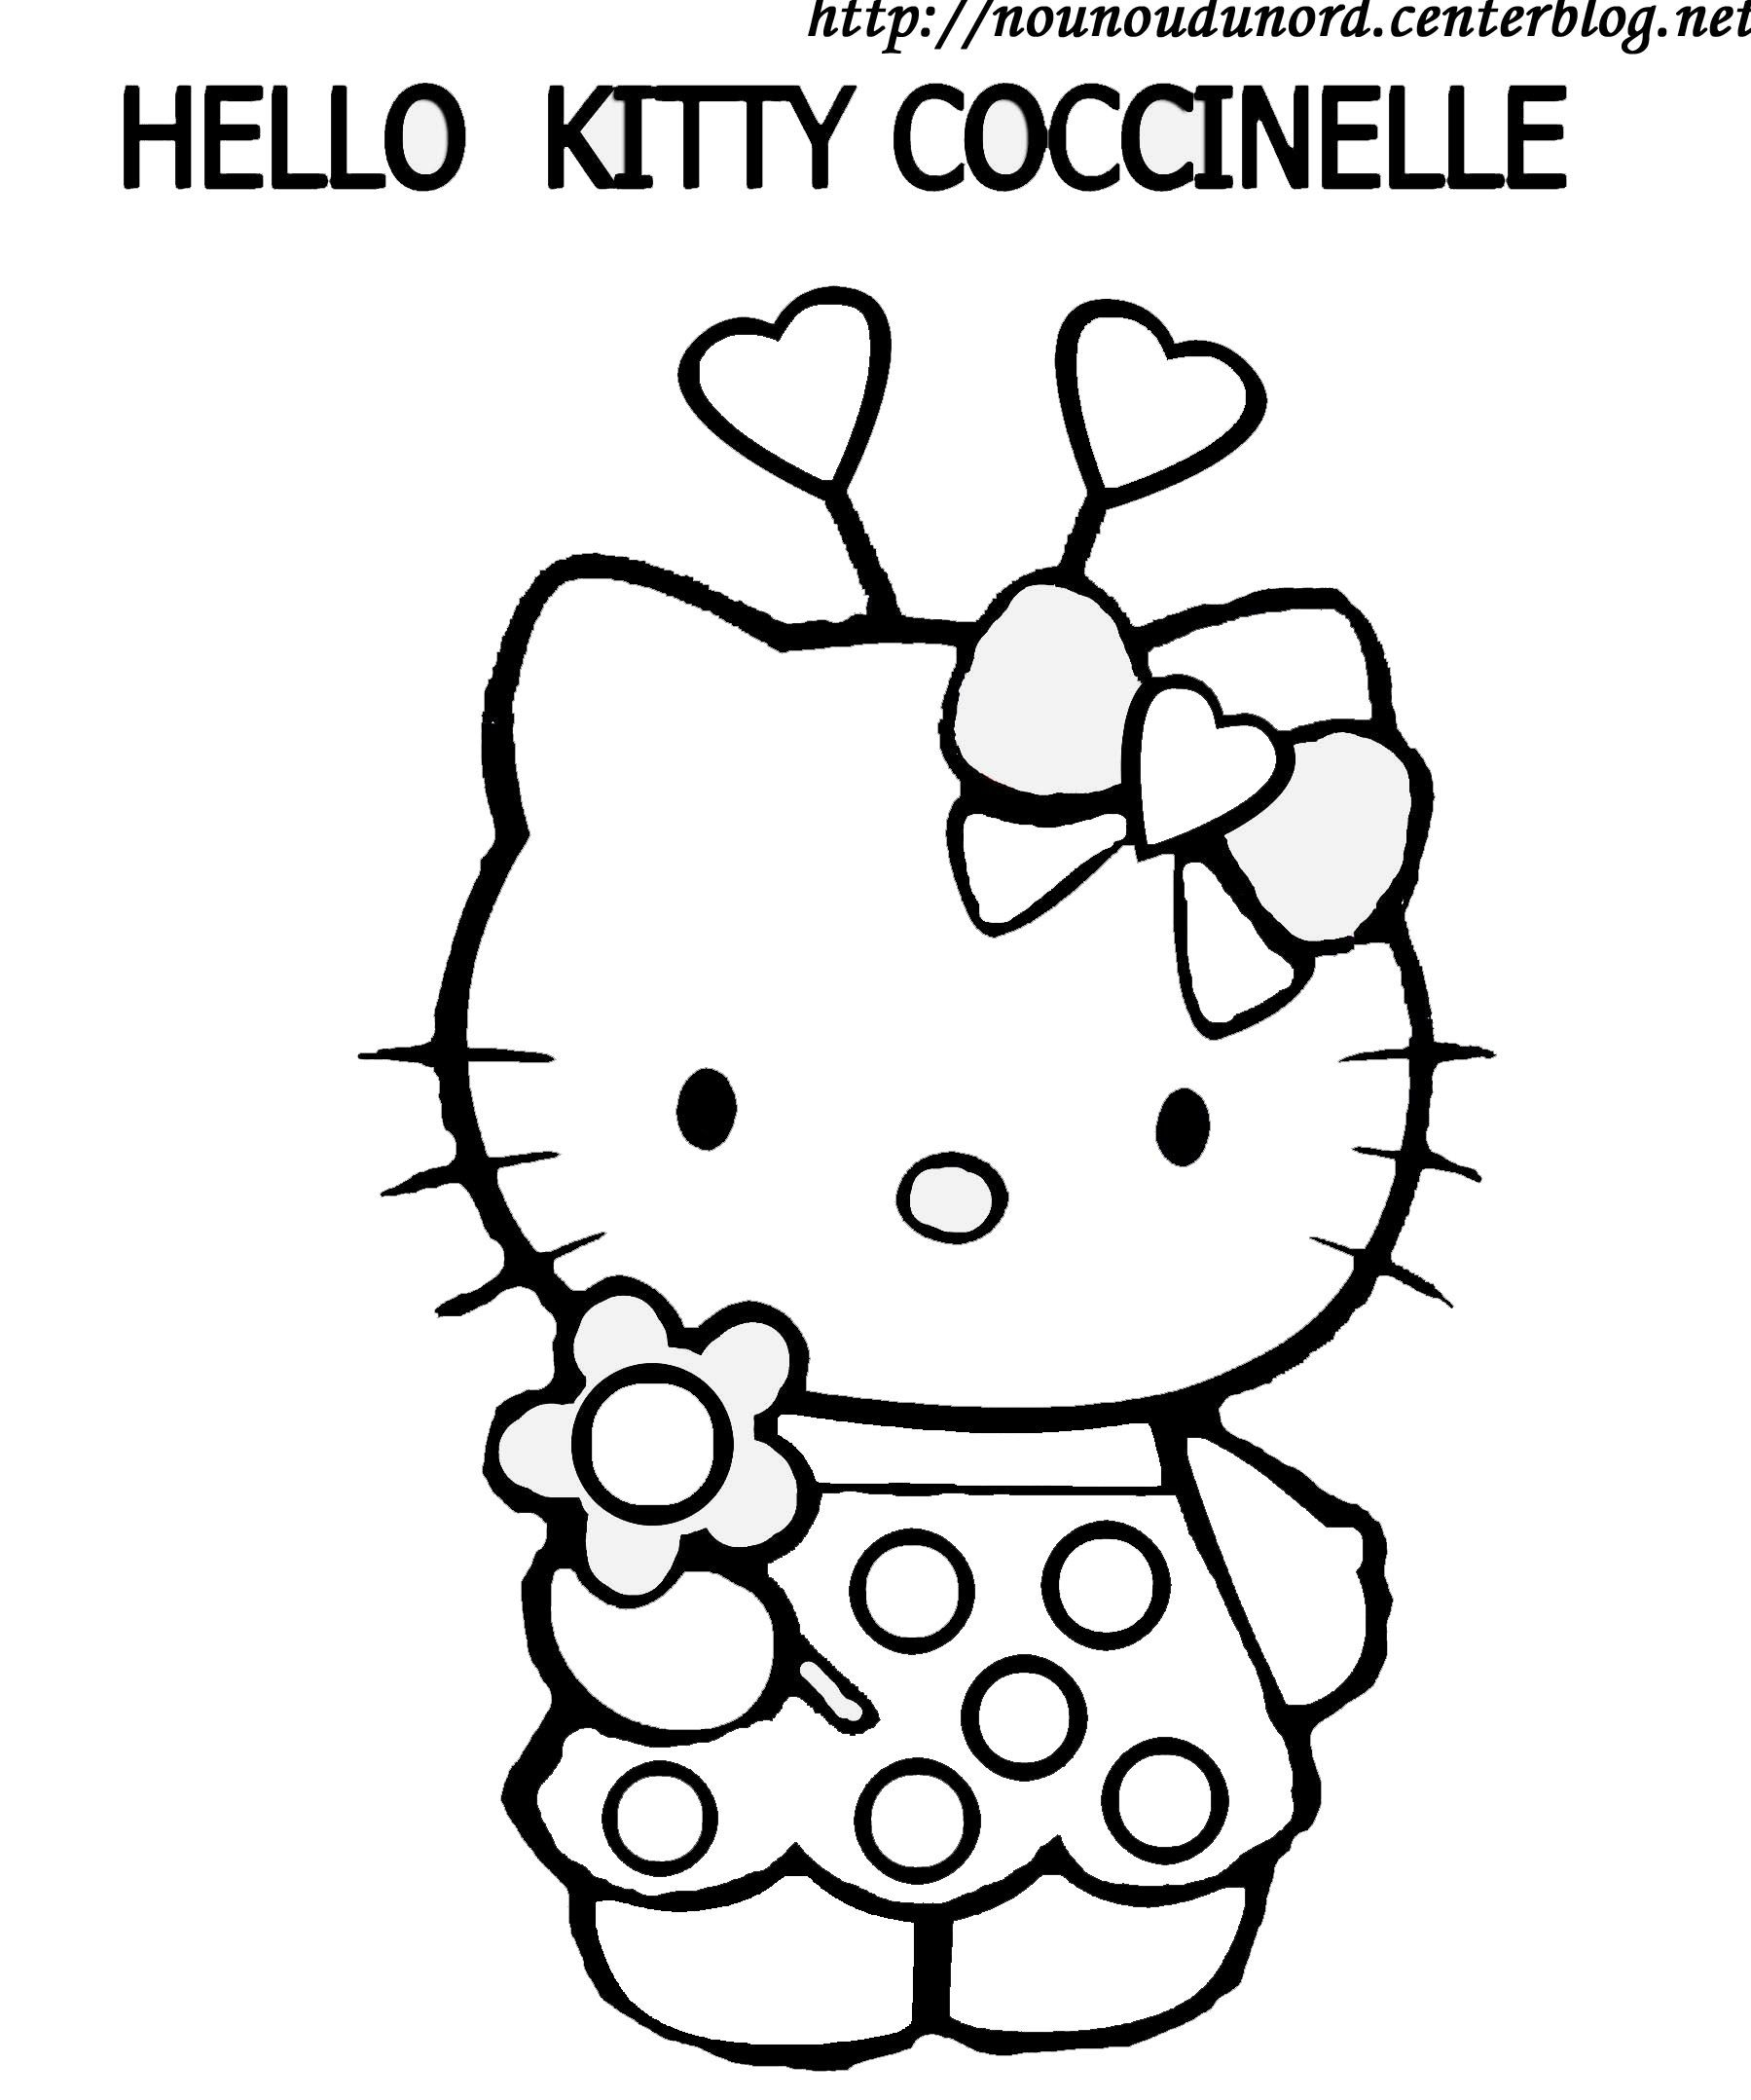 Coloriage Hello Kitty À Colorier - Dessin À Imprimer tout Hello Kitty À Dessiner